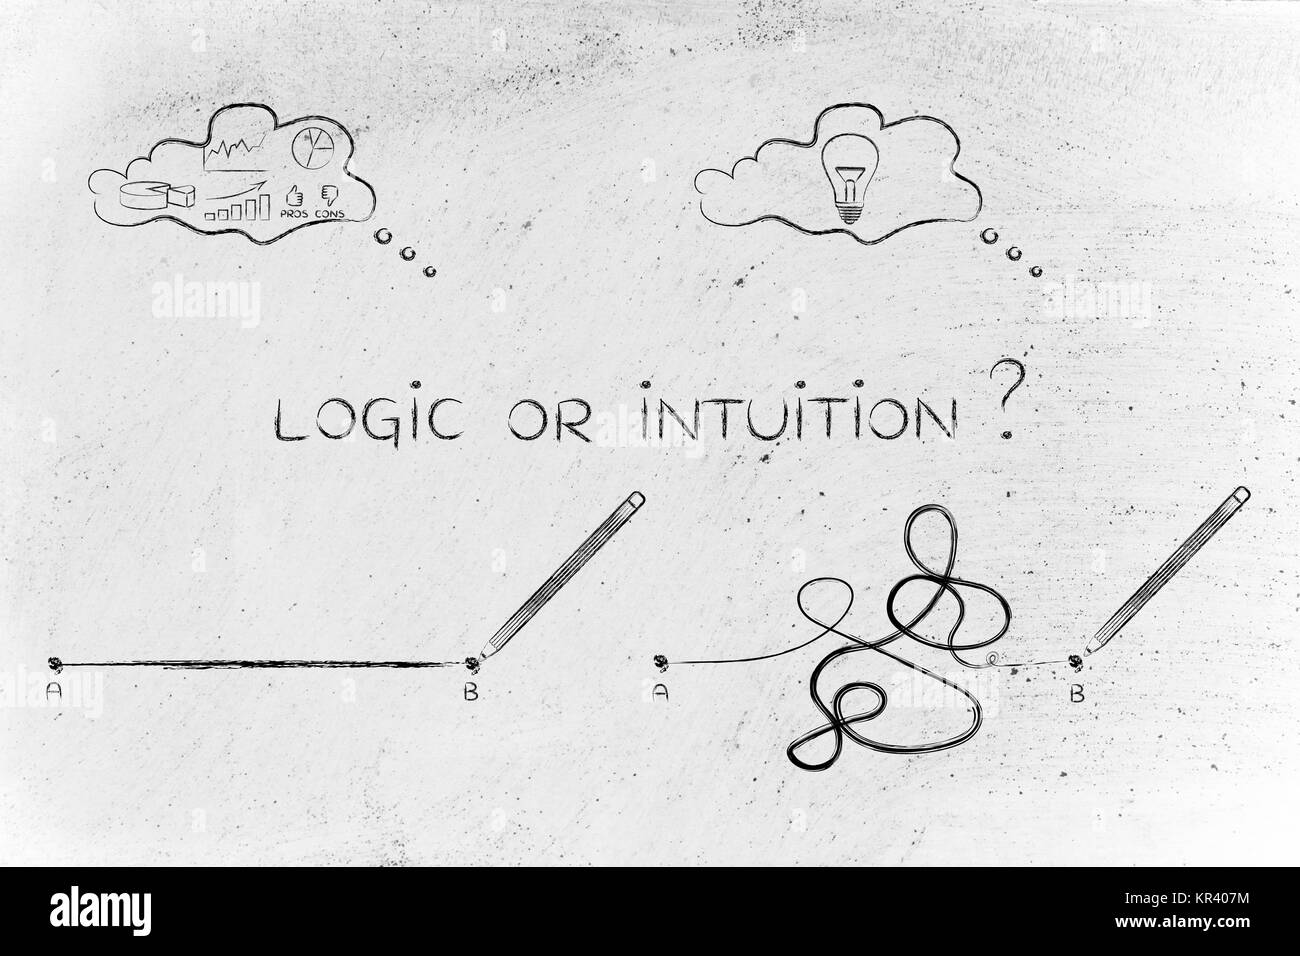 rationality vs creative process, point A to B lines and thought bubbles - Stock Image